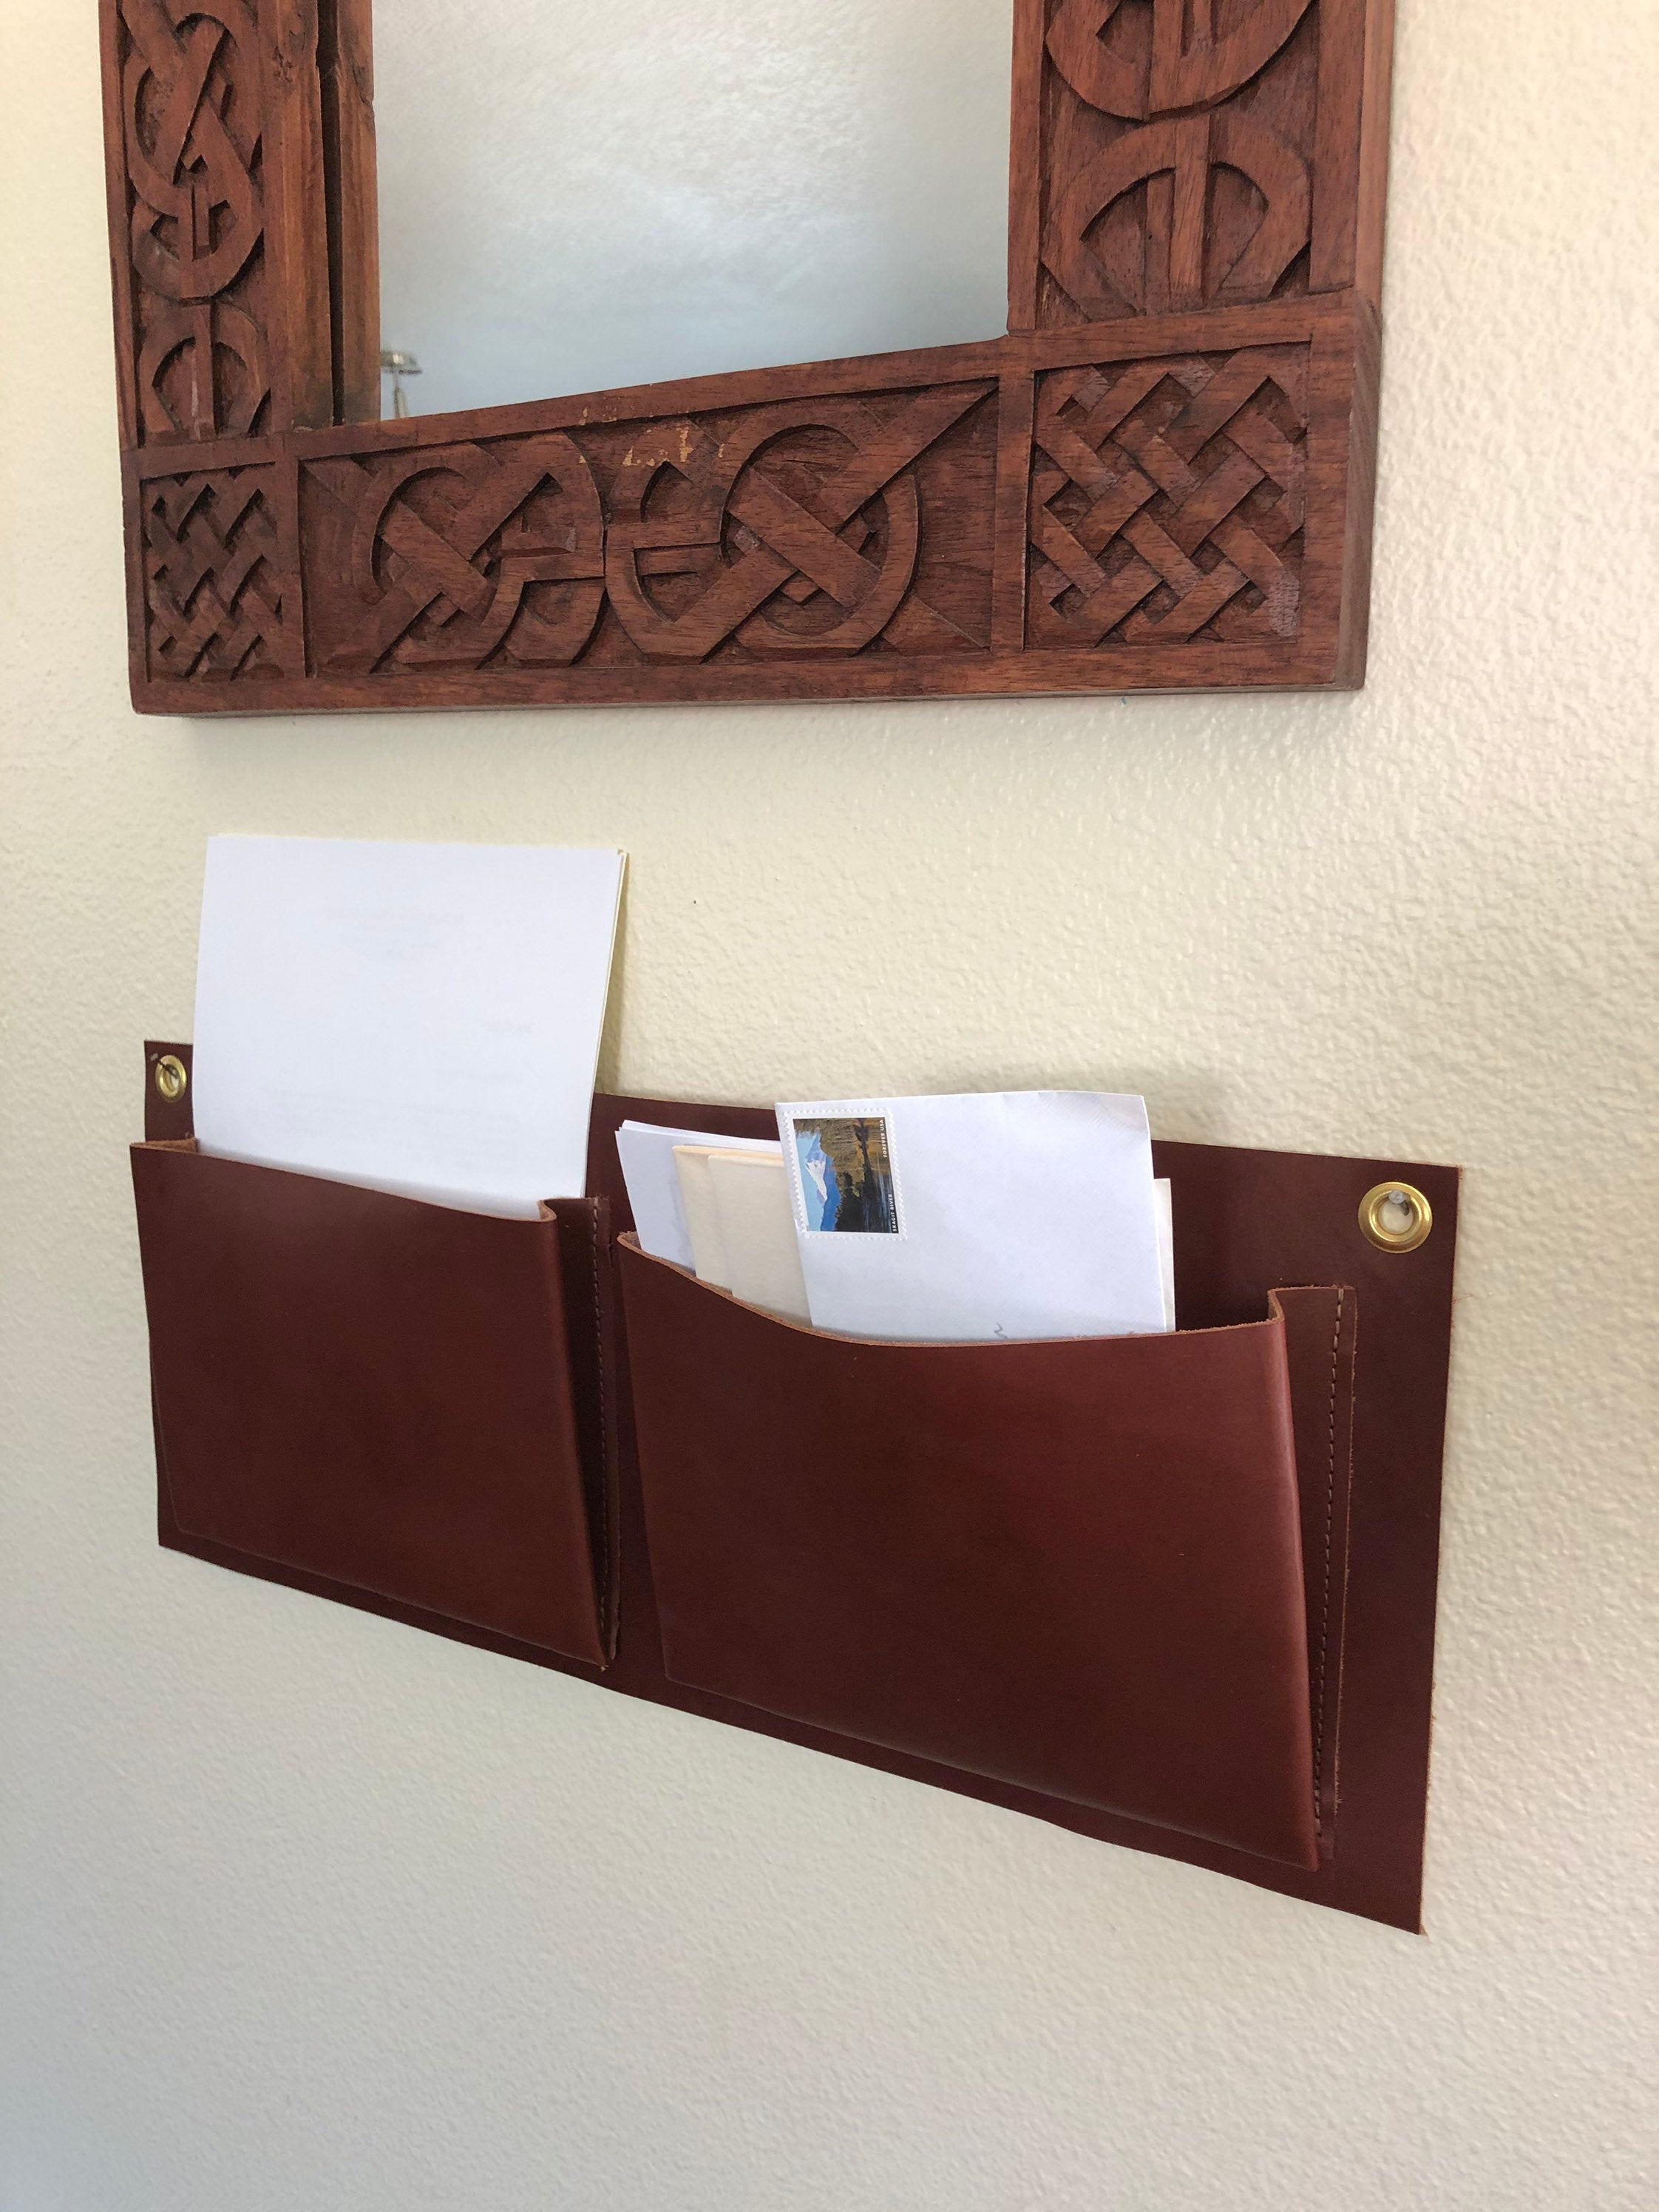 Brown leather wall organizer, two pocket, hangs under mirror holding paperwork